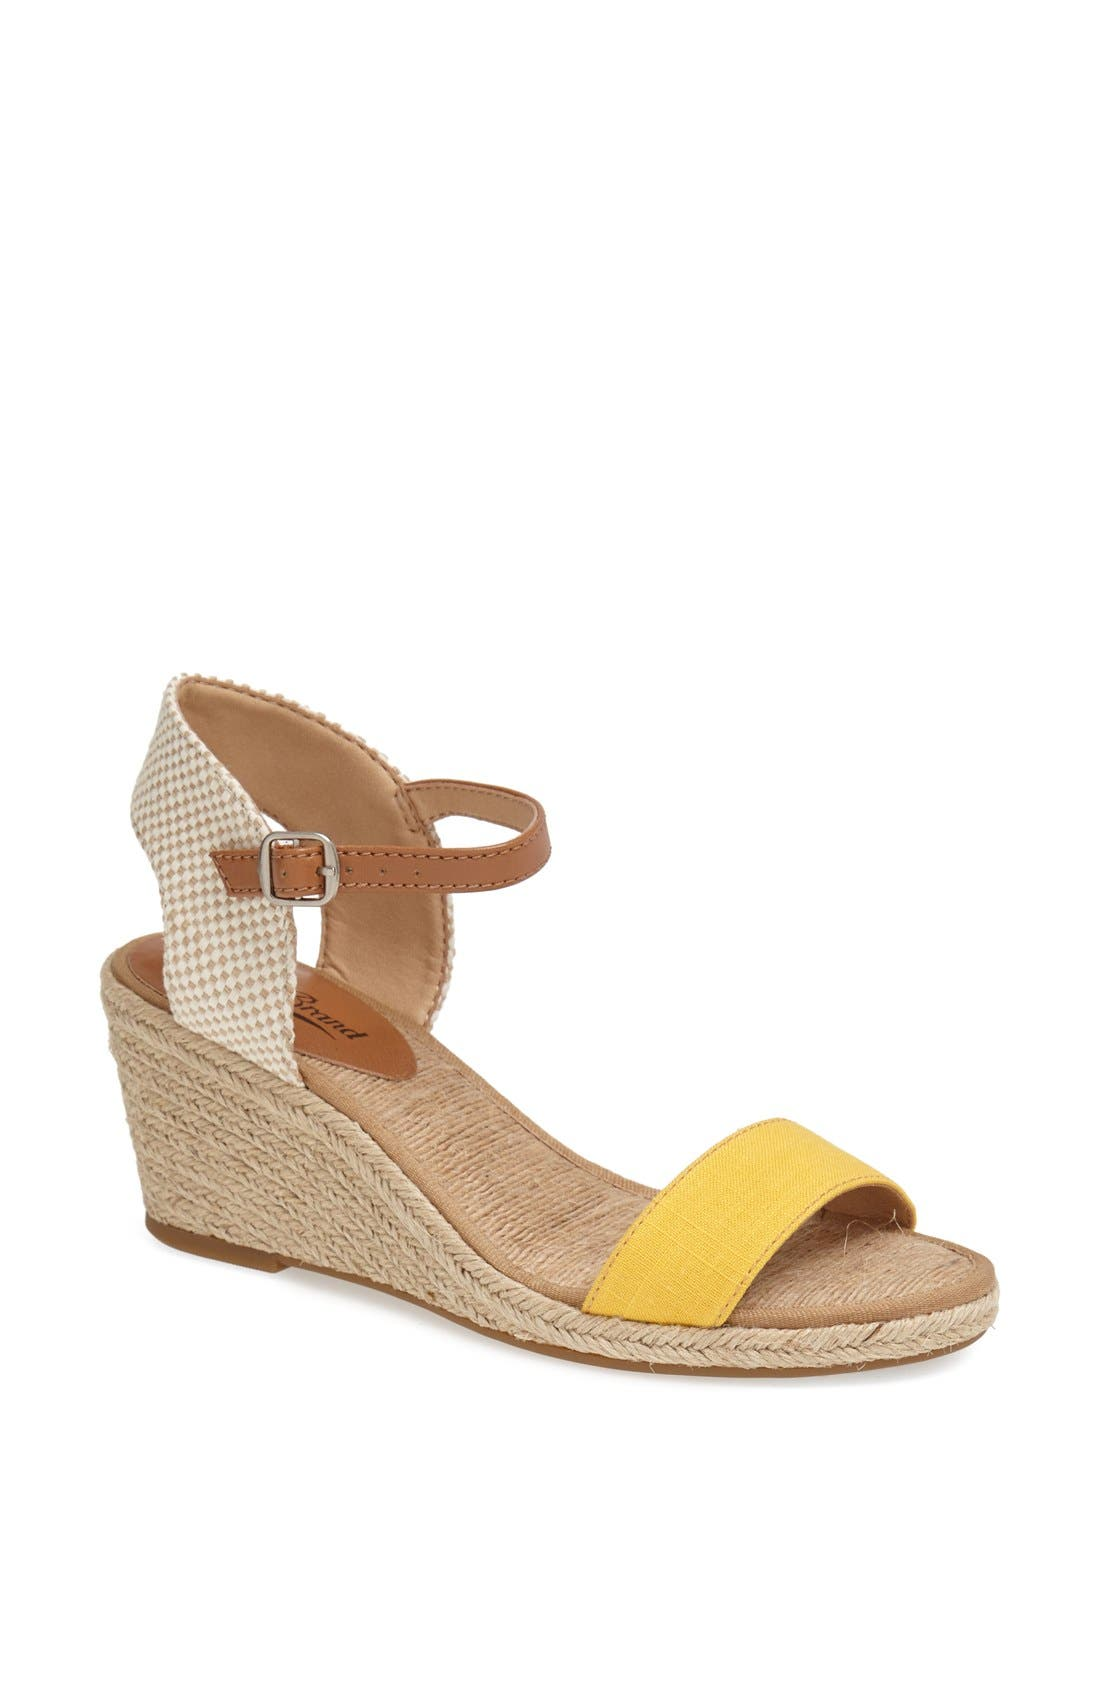 Alternate Image 1 Selected - Lucky Brand 'Kavelli' Espadrille Wedge